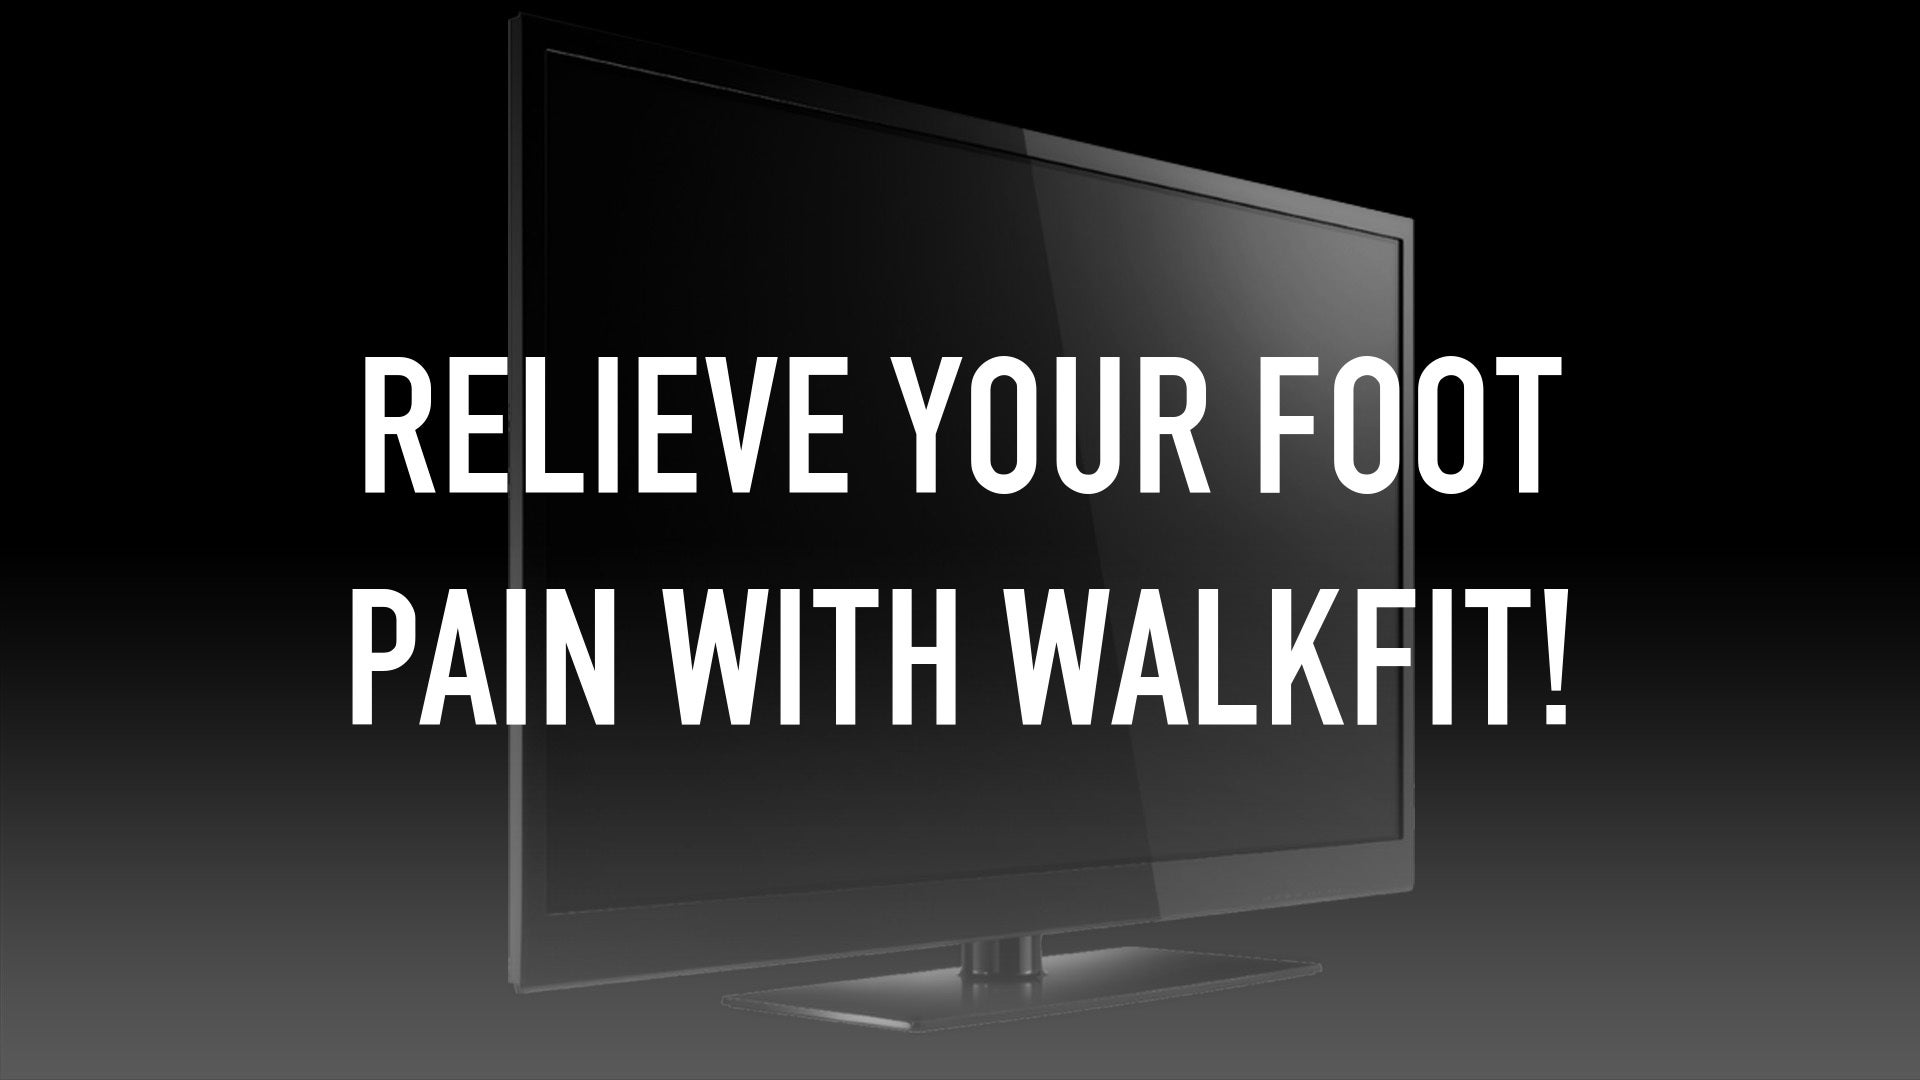 Relieve Your Foot Pain with WalkFit!